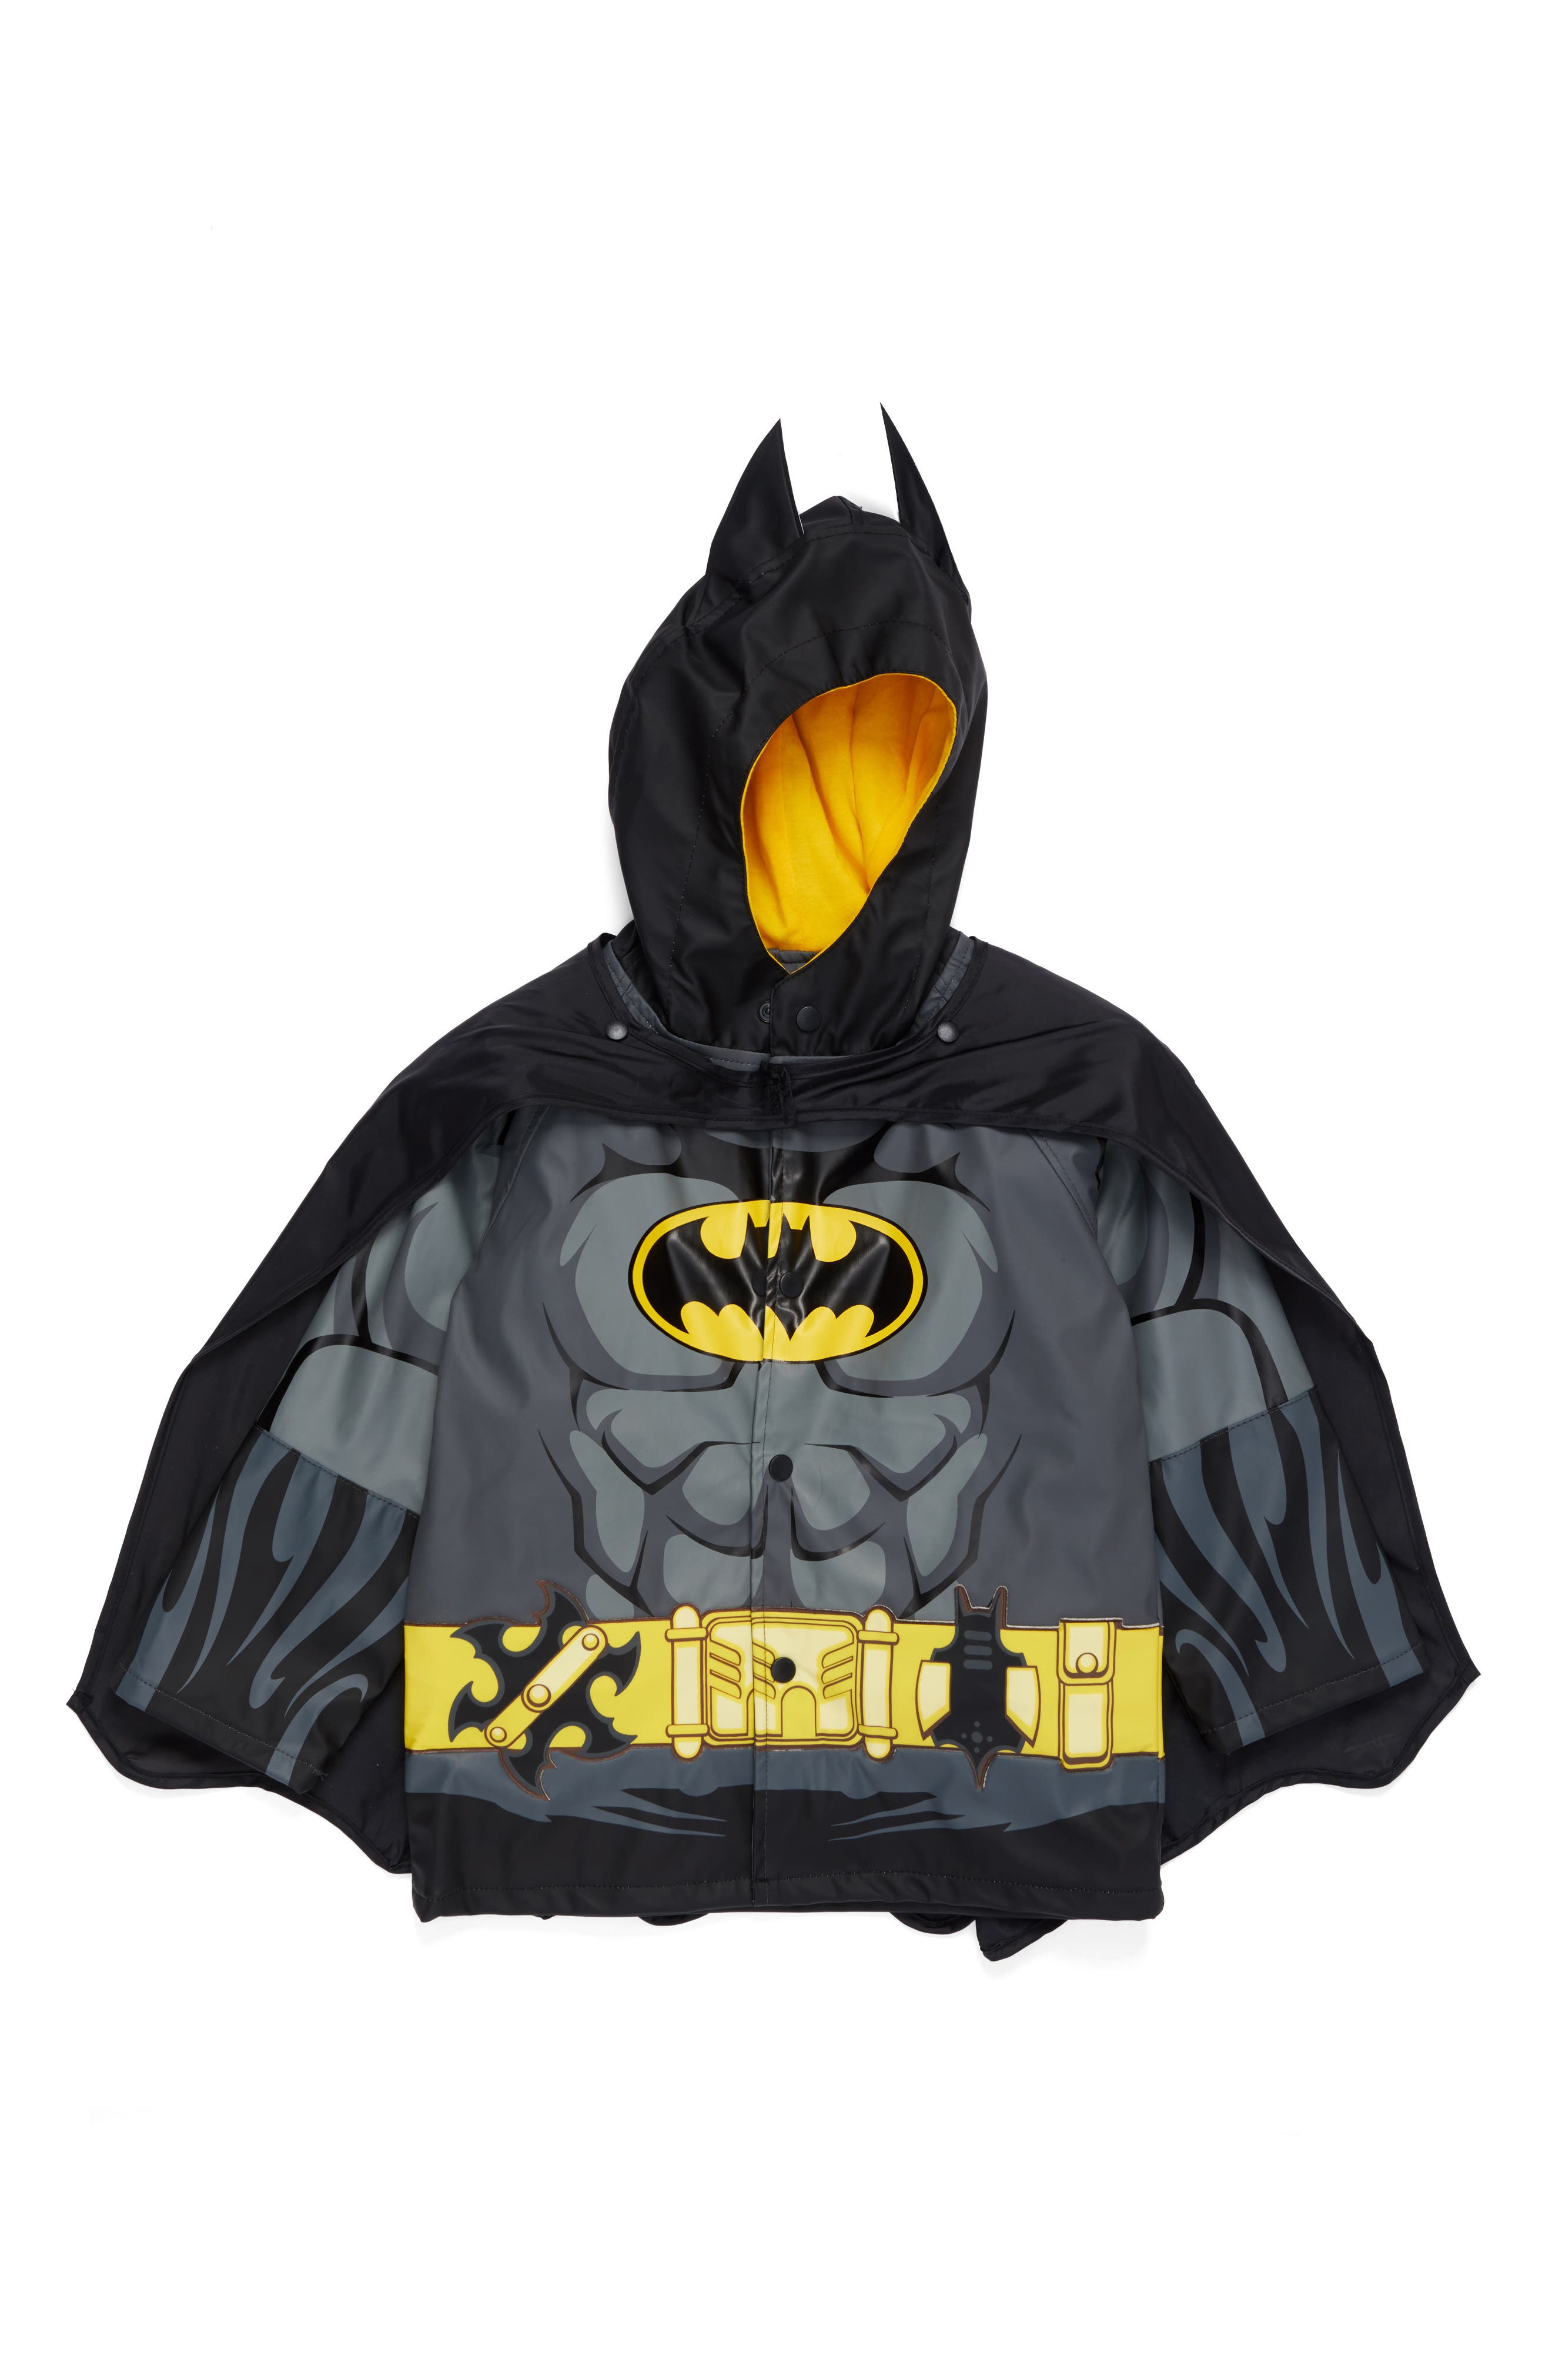 Alternate Image 1 Selected - Western Chief Batman Everlasting Hooded Raincoat (Toddler Boys & Little Boys)